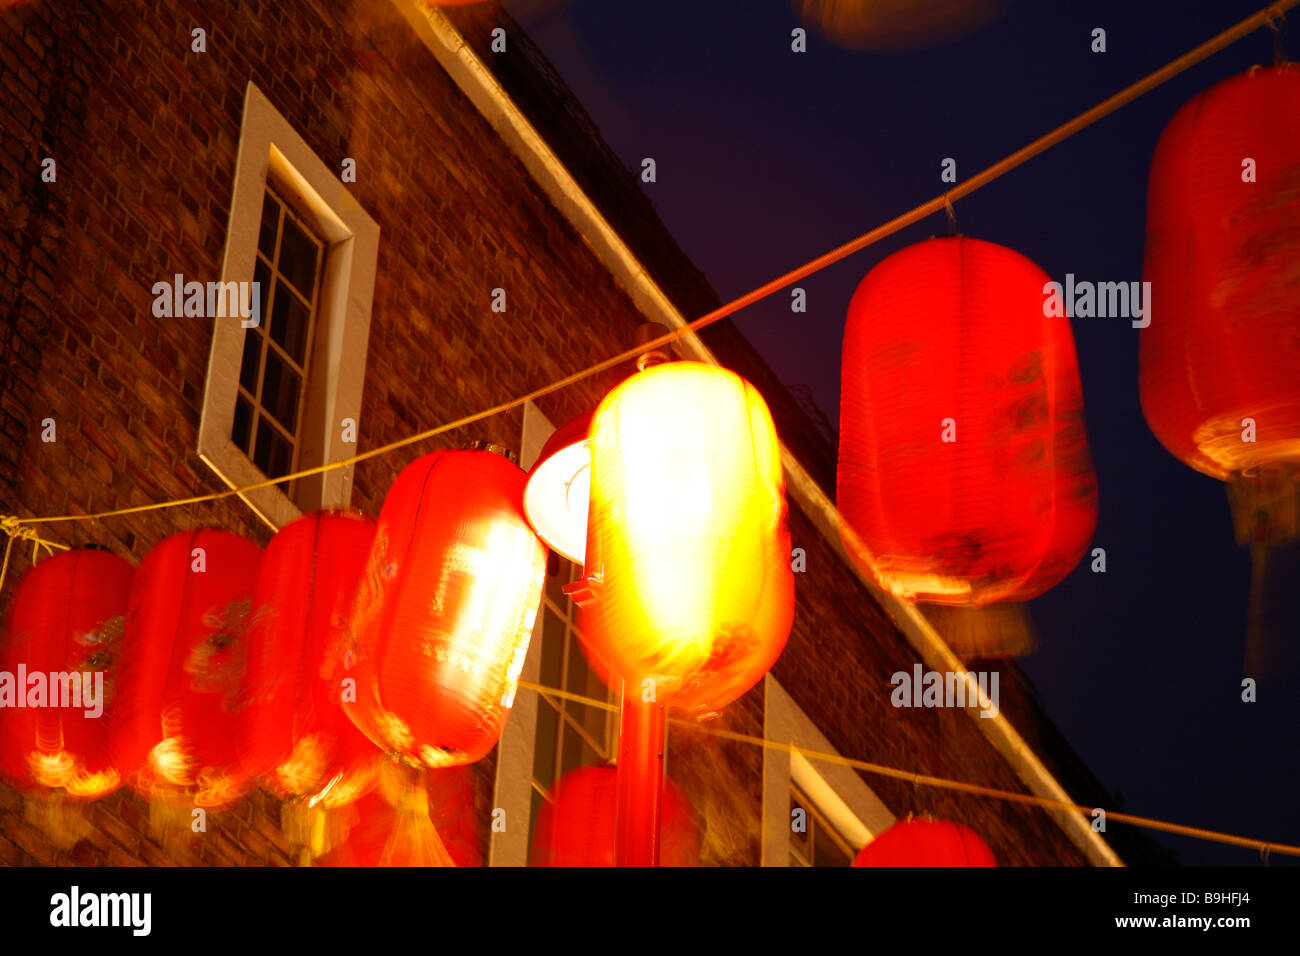 Paper lanterns hanging above Gerrard Sreet in Chinatown, London, during Chinese New Year - Stock Image